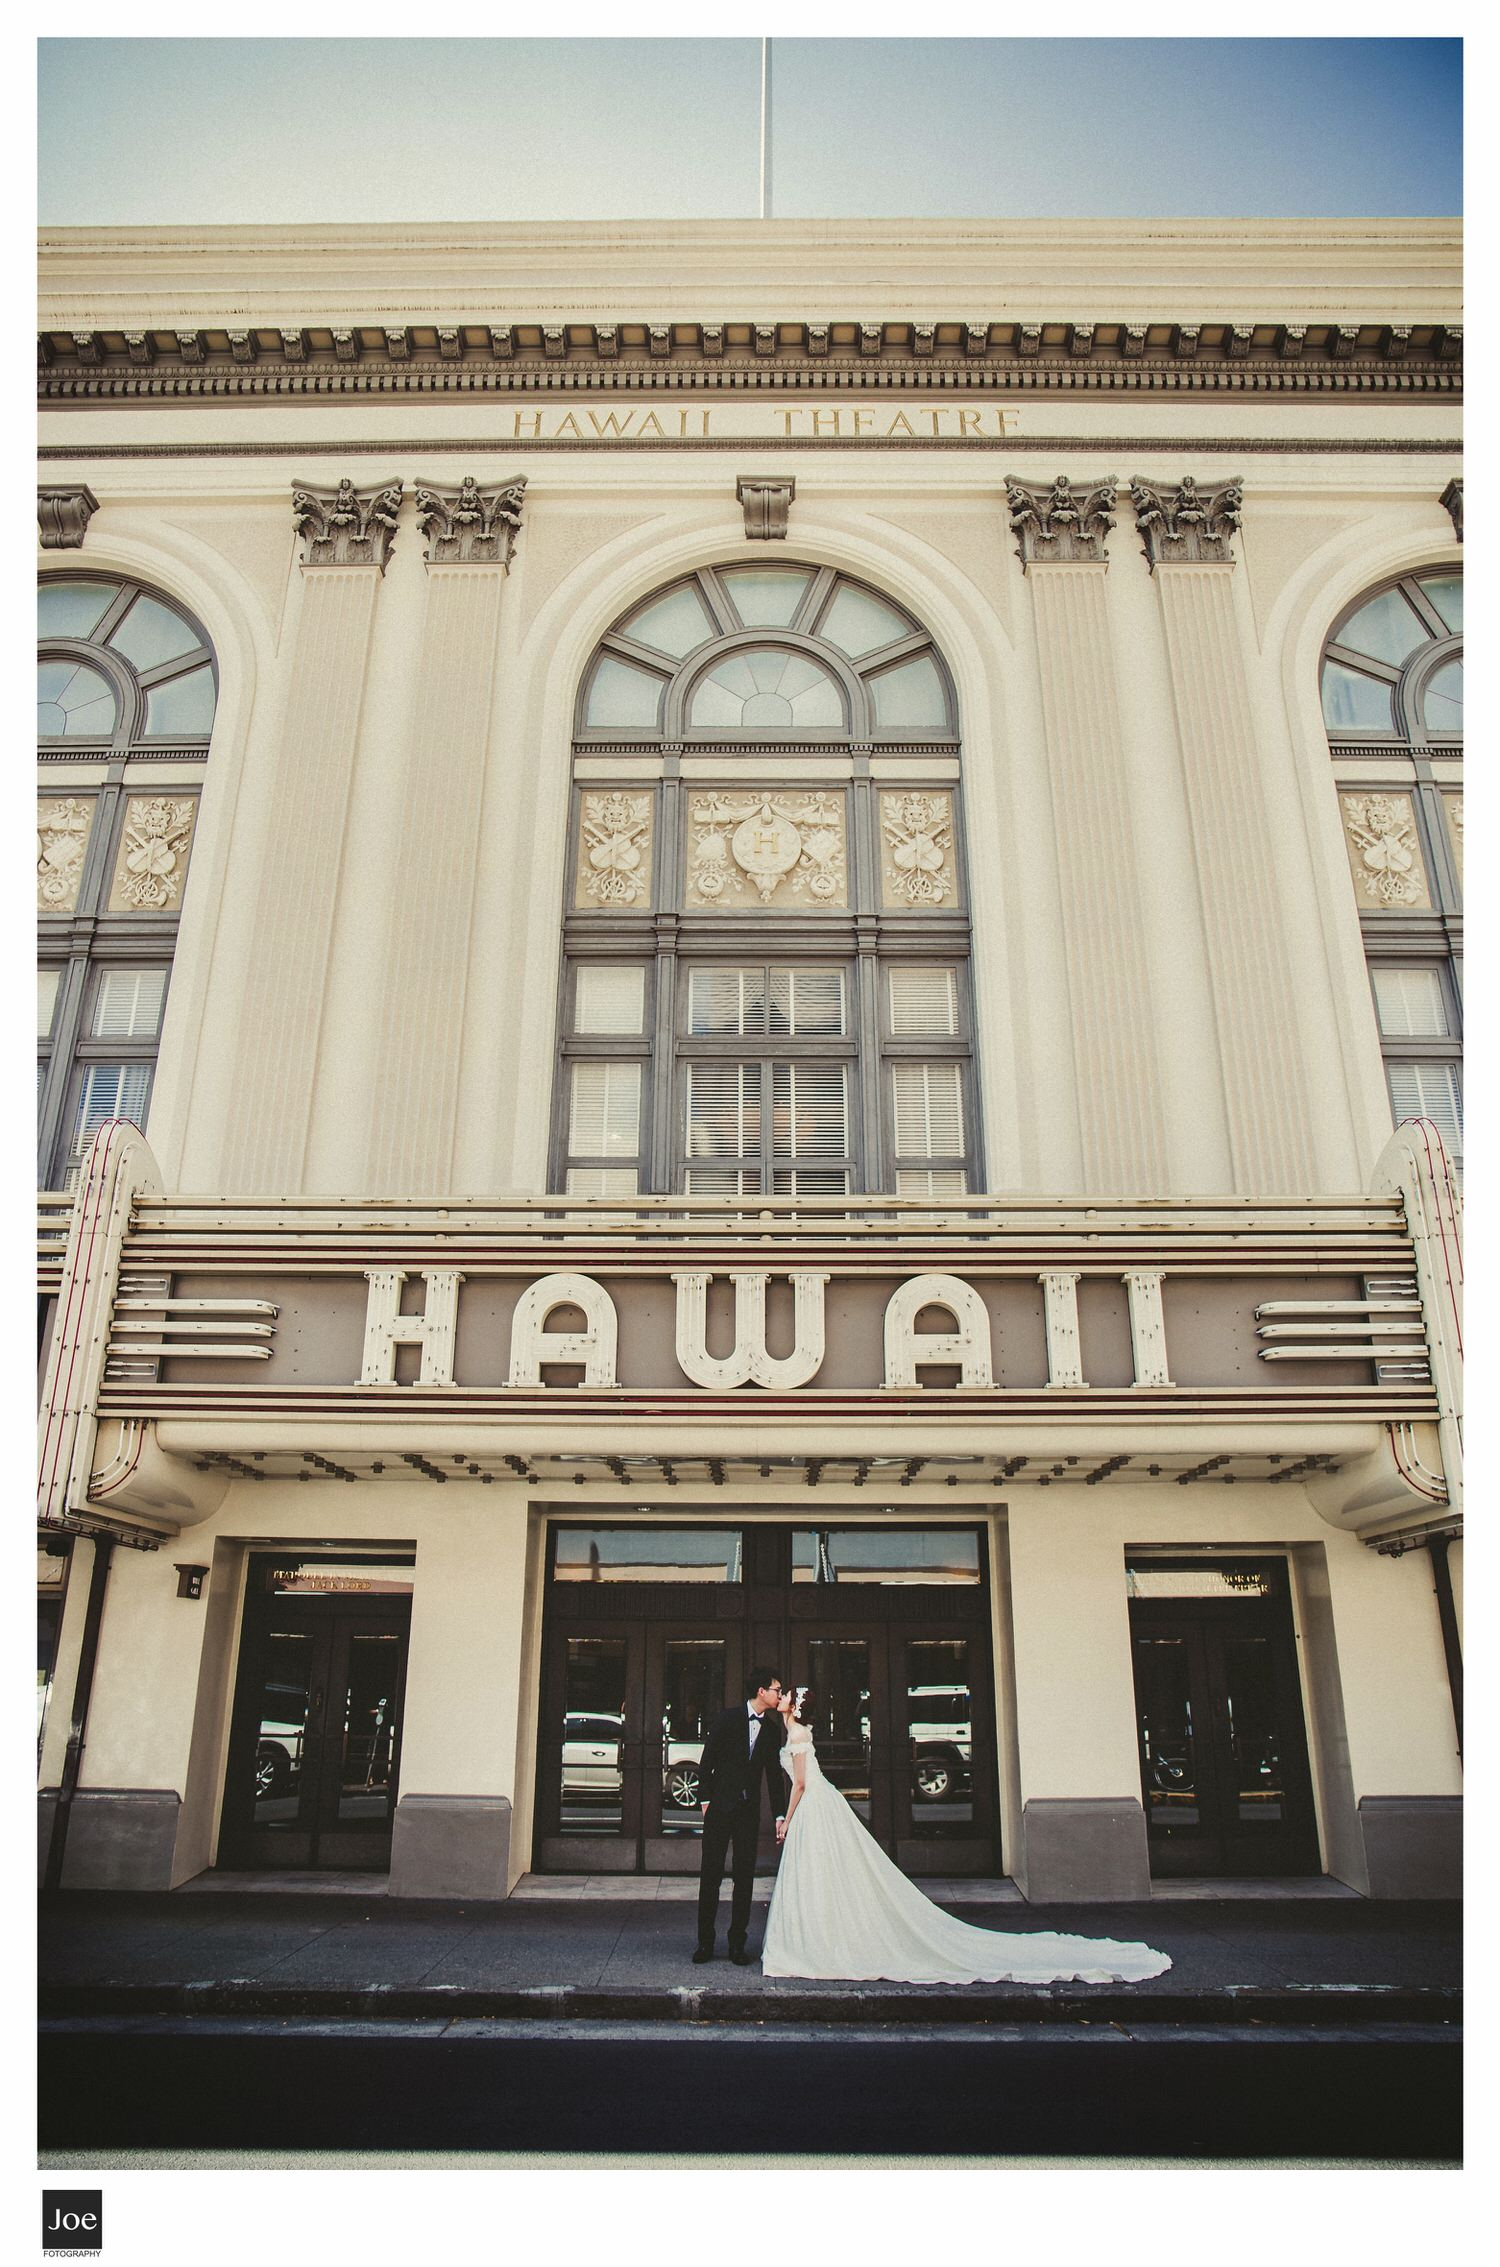 Hawaii Theatre (夏威夷歌劇場)